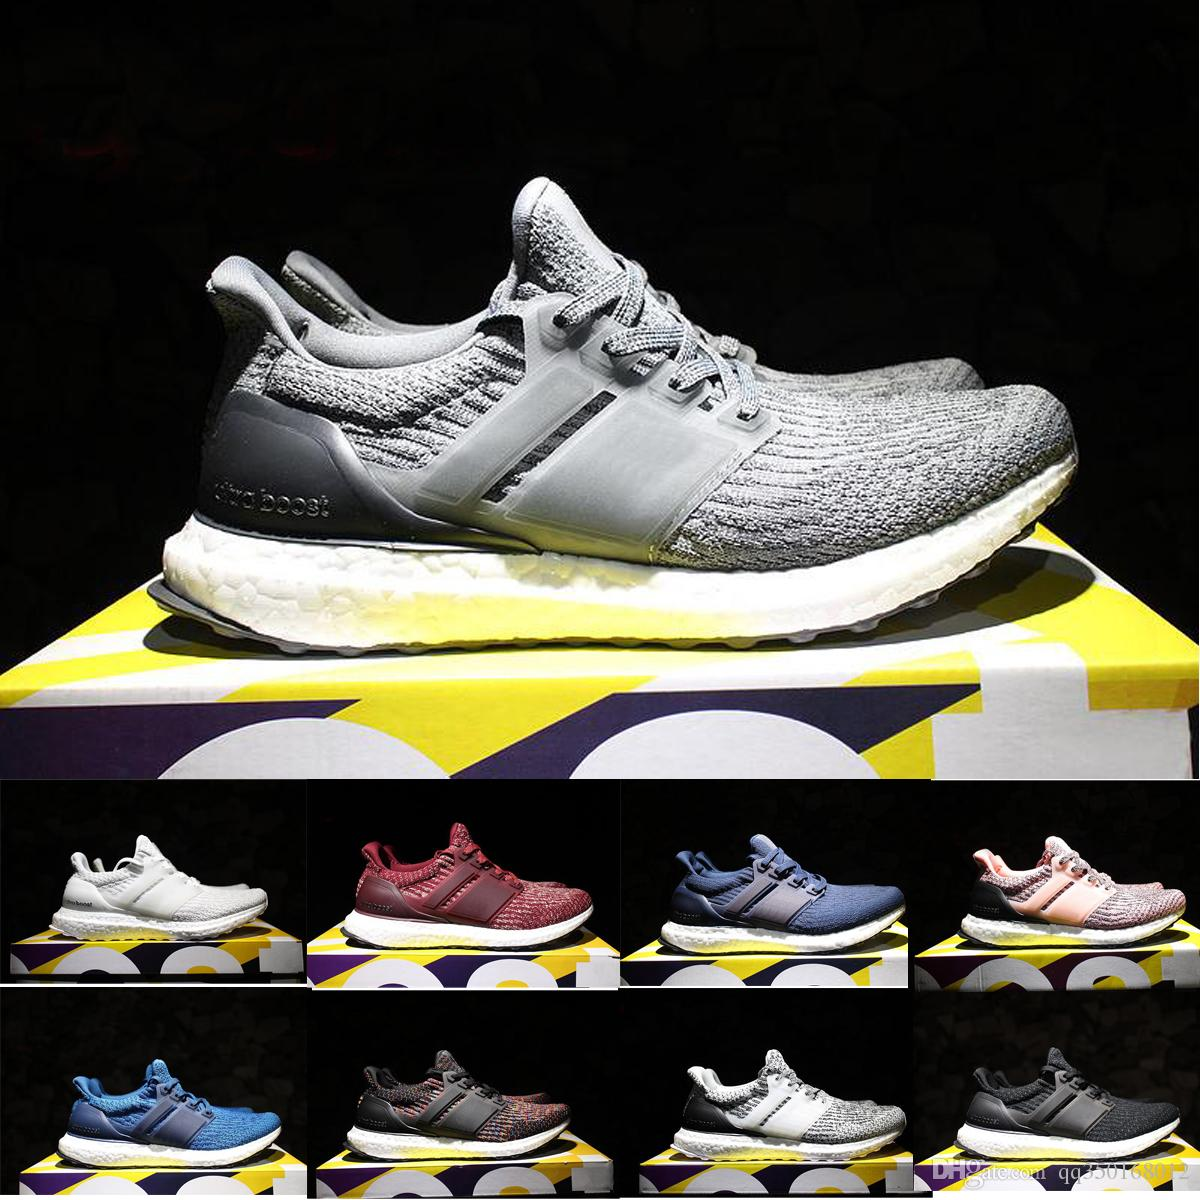 quality design 803e8 ba708 Compre Adidas Ultra Boost Shoes 2017 Ultra Boost 3.0 Triple Negro Blanco  Cny Oreo Azul Hombres Mujeres Zapatillas De Running Ultraboost Primeknit  Zapatos ...